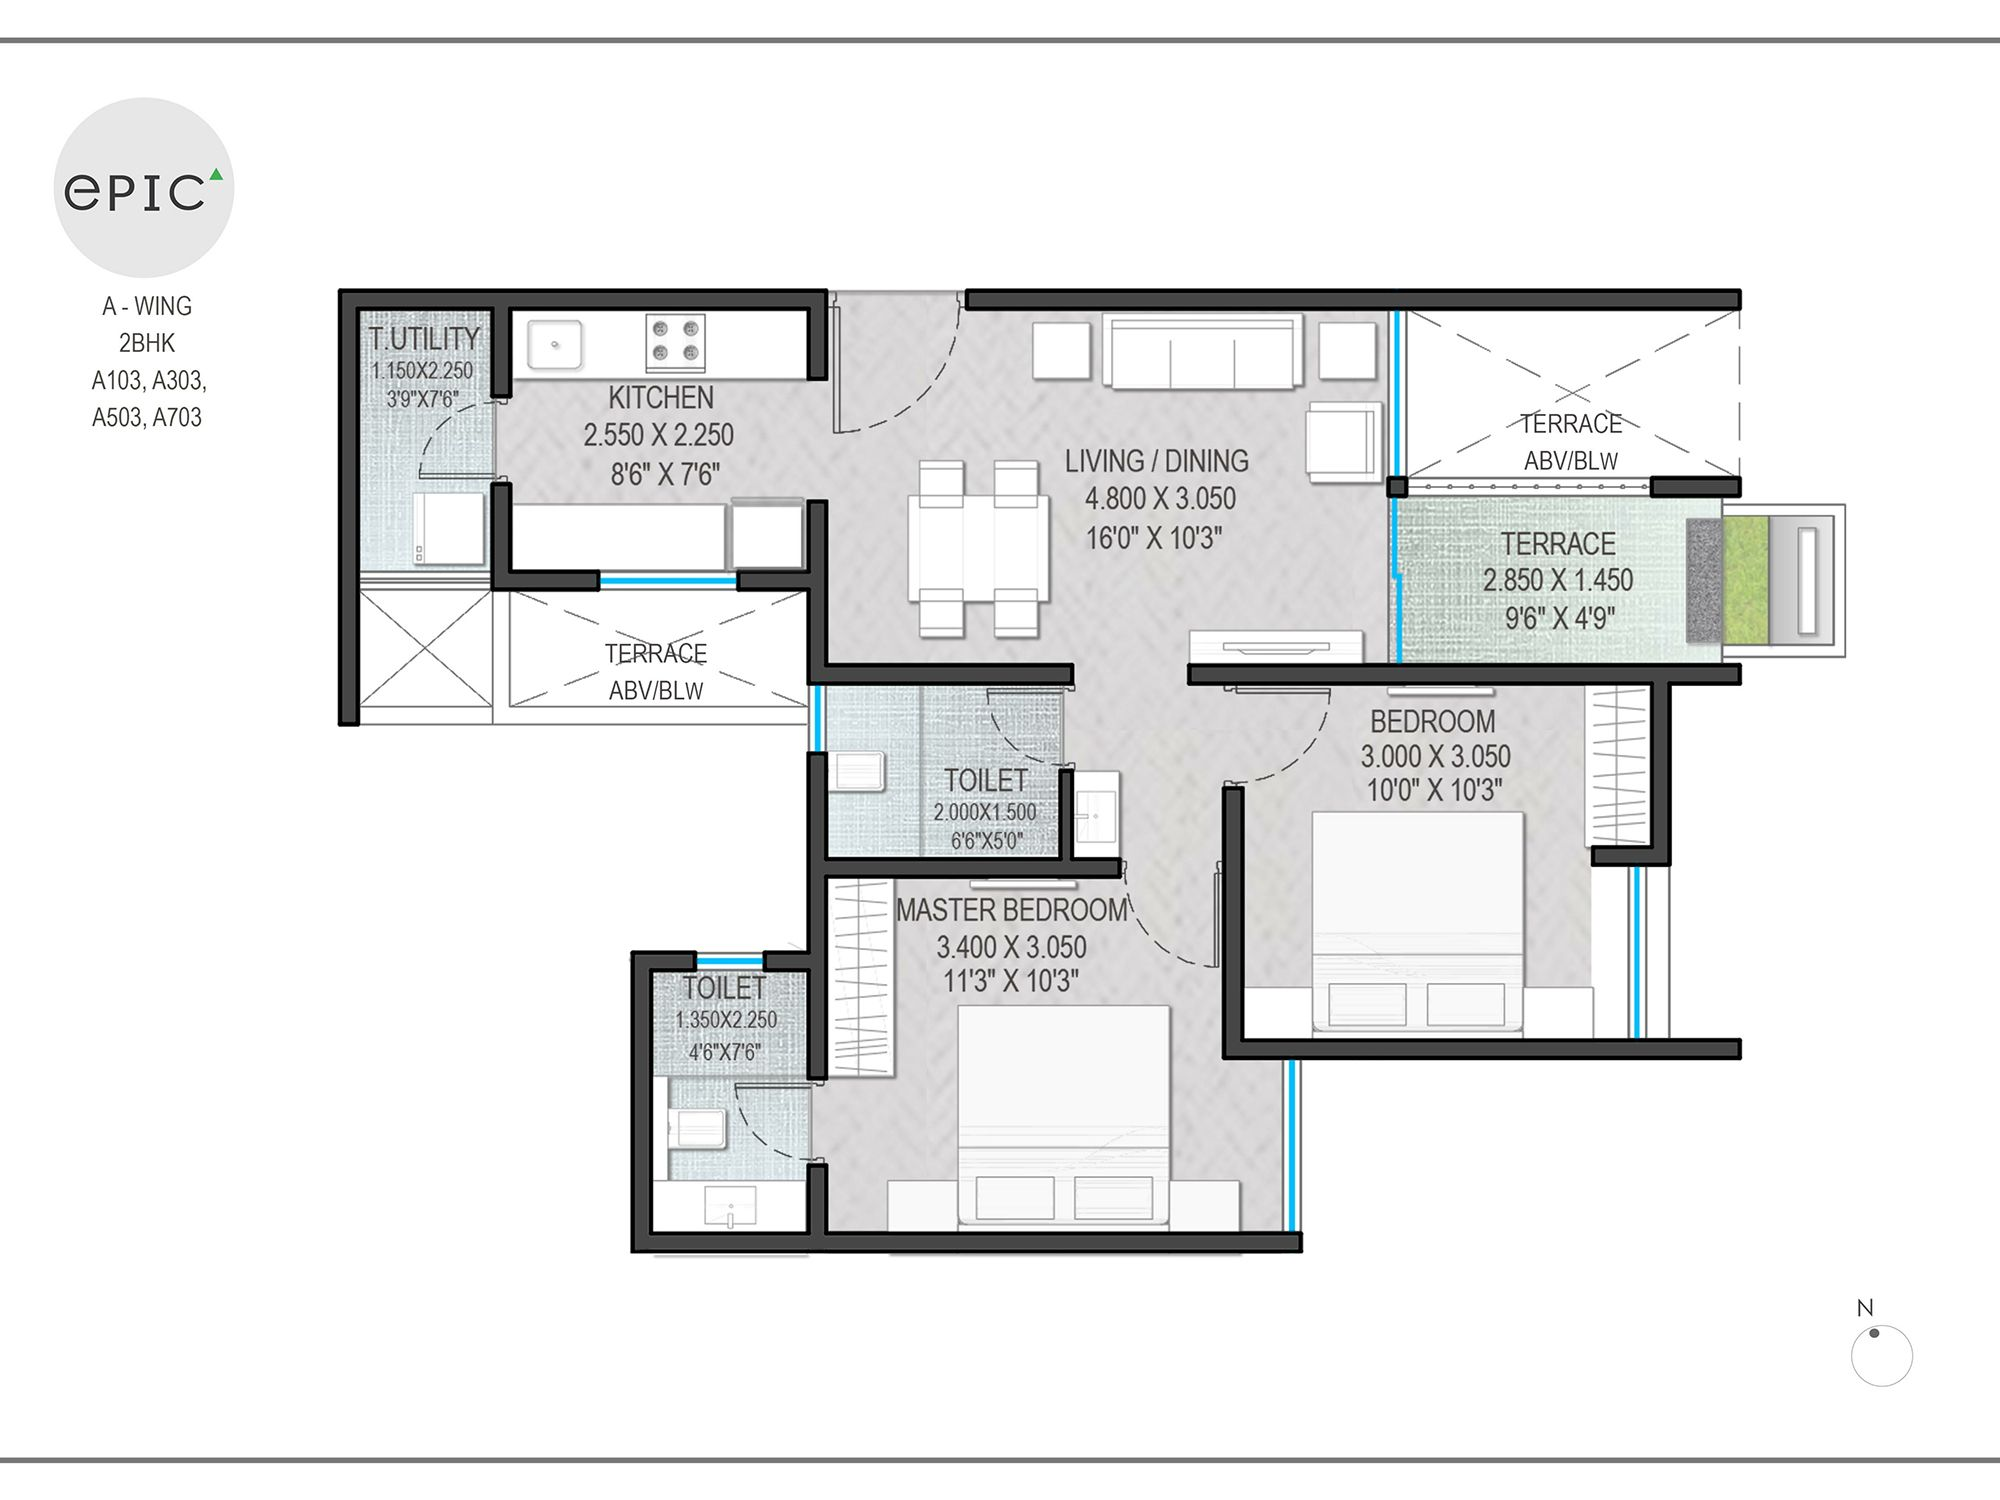 A wing 2 BHK A103, A303, A503, A703